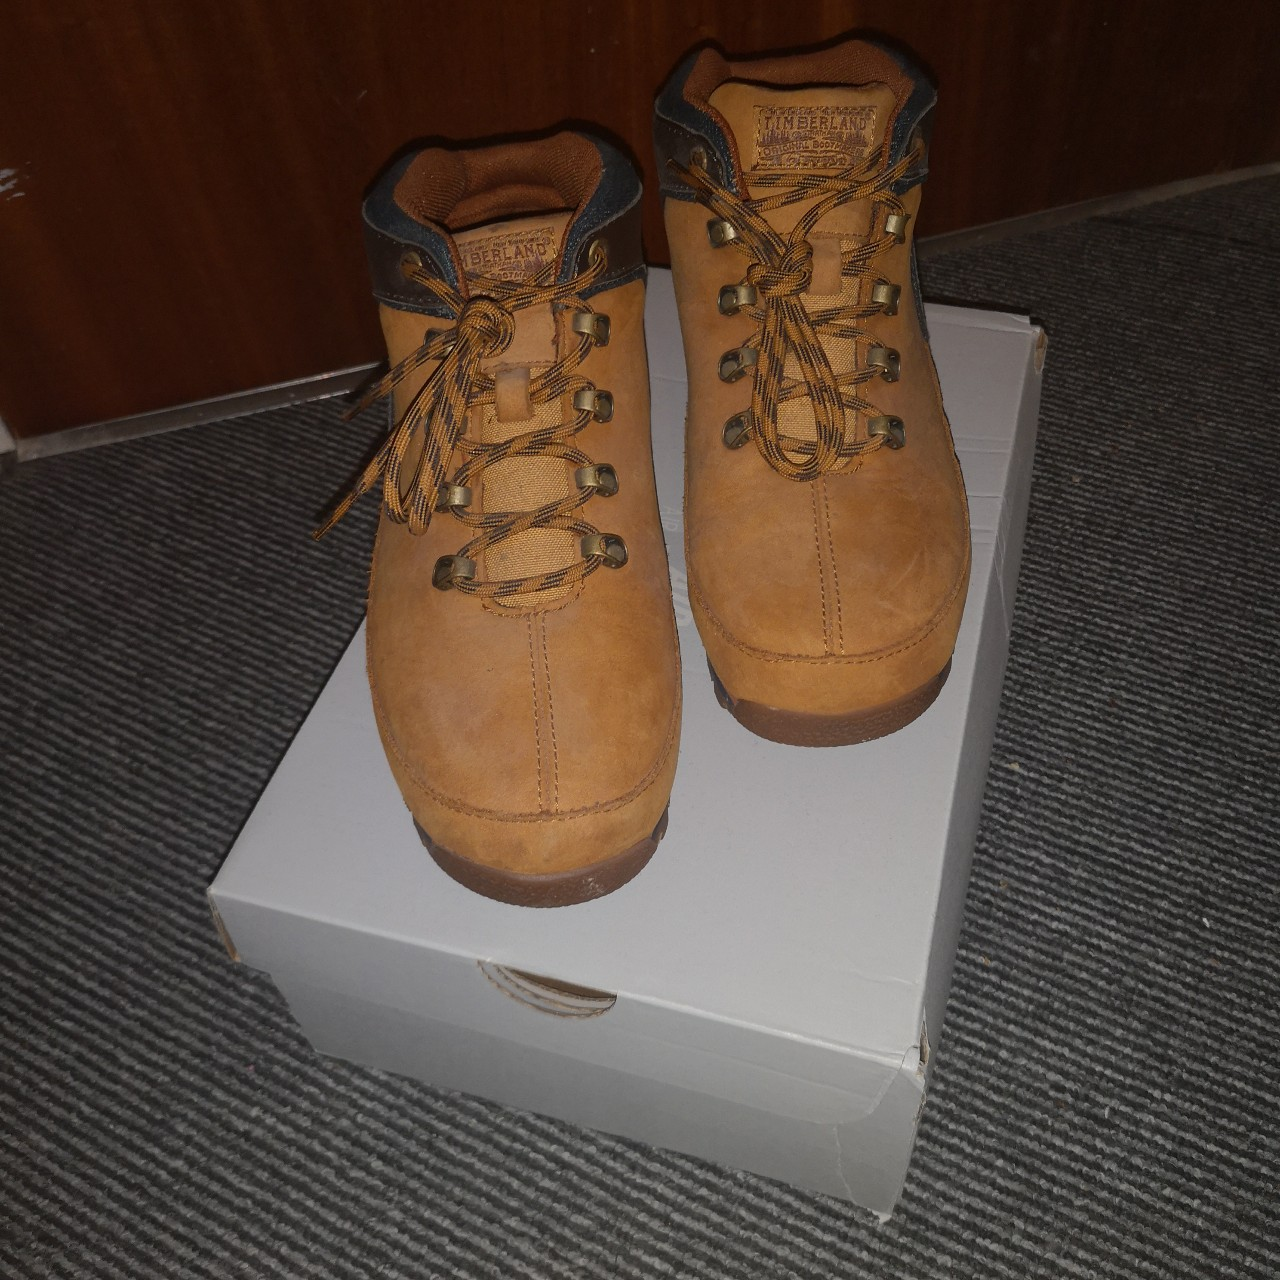 Selling these brown 'Timberland Calderbrook 3' boots Depop